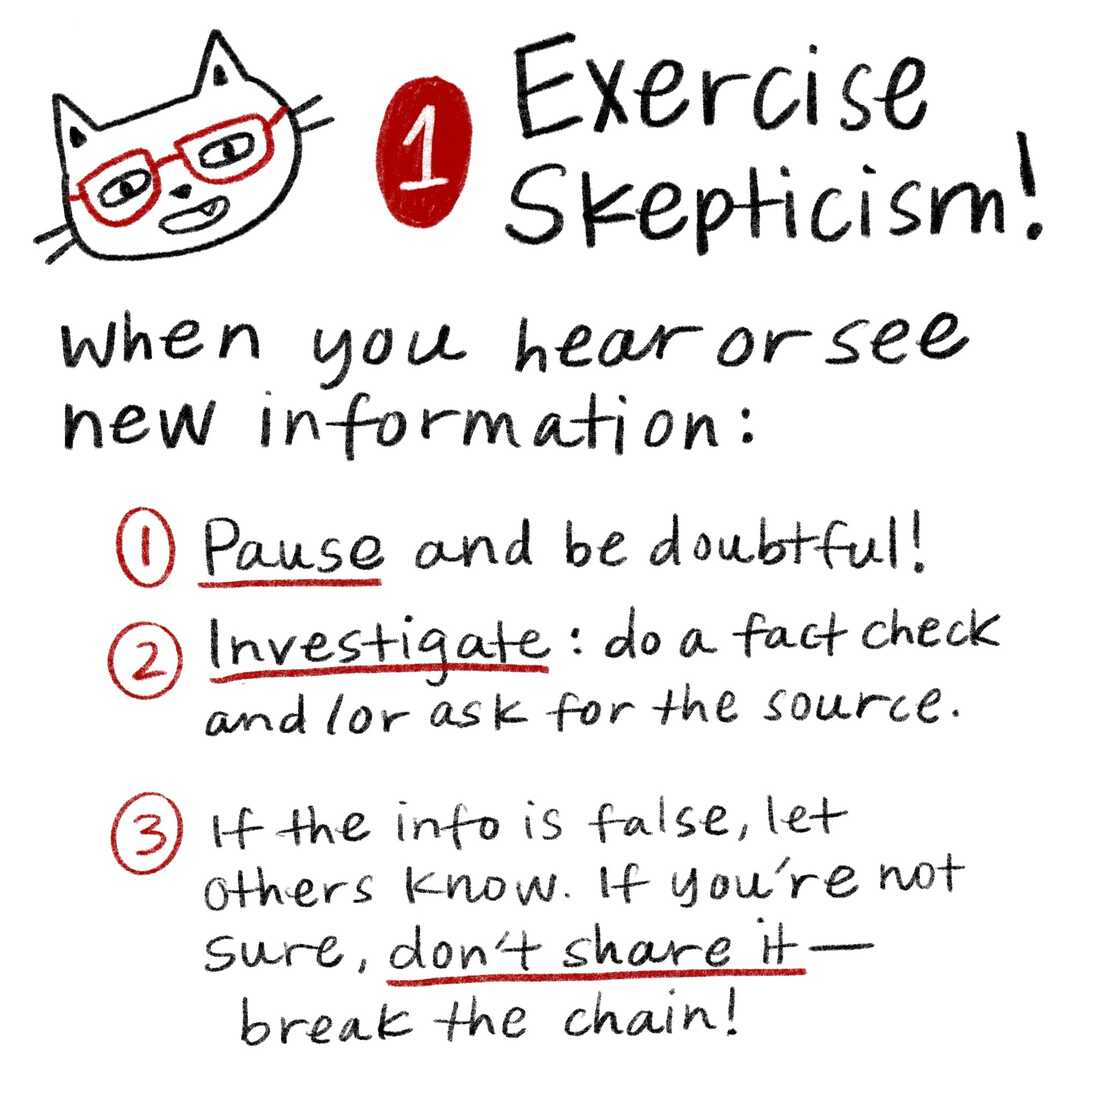 Tip 1: Exercise Skepticism. When you hear or see now information, first pause and be doubtful. Then investigate — do a fact check and/or ask for the source. Finally, if the information is false, let others know. If you're not sure, then don't share it — break the chain!